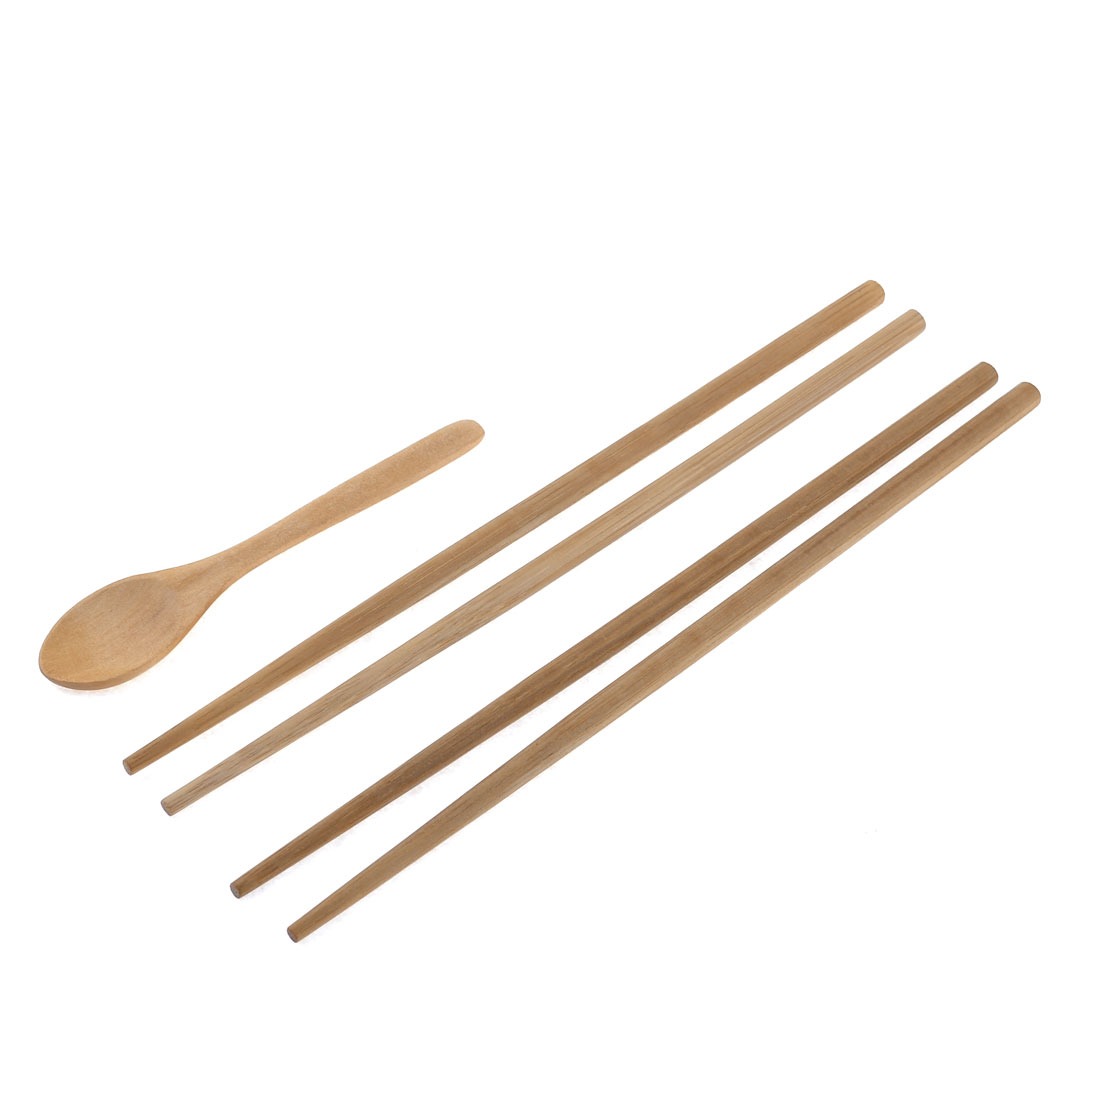 Brown Wooden Chinese Chopsticks Rice Spoon Tableware 3 in 1